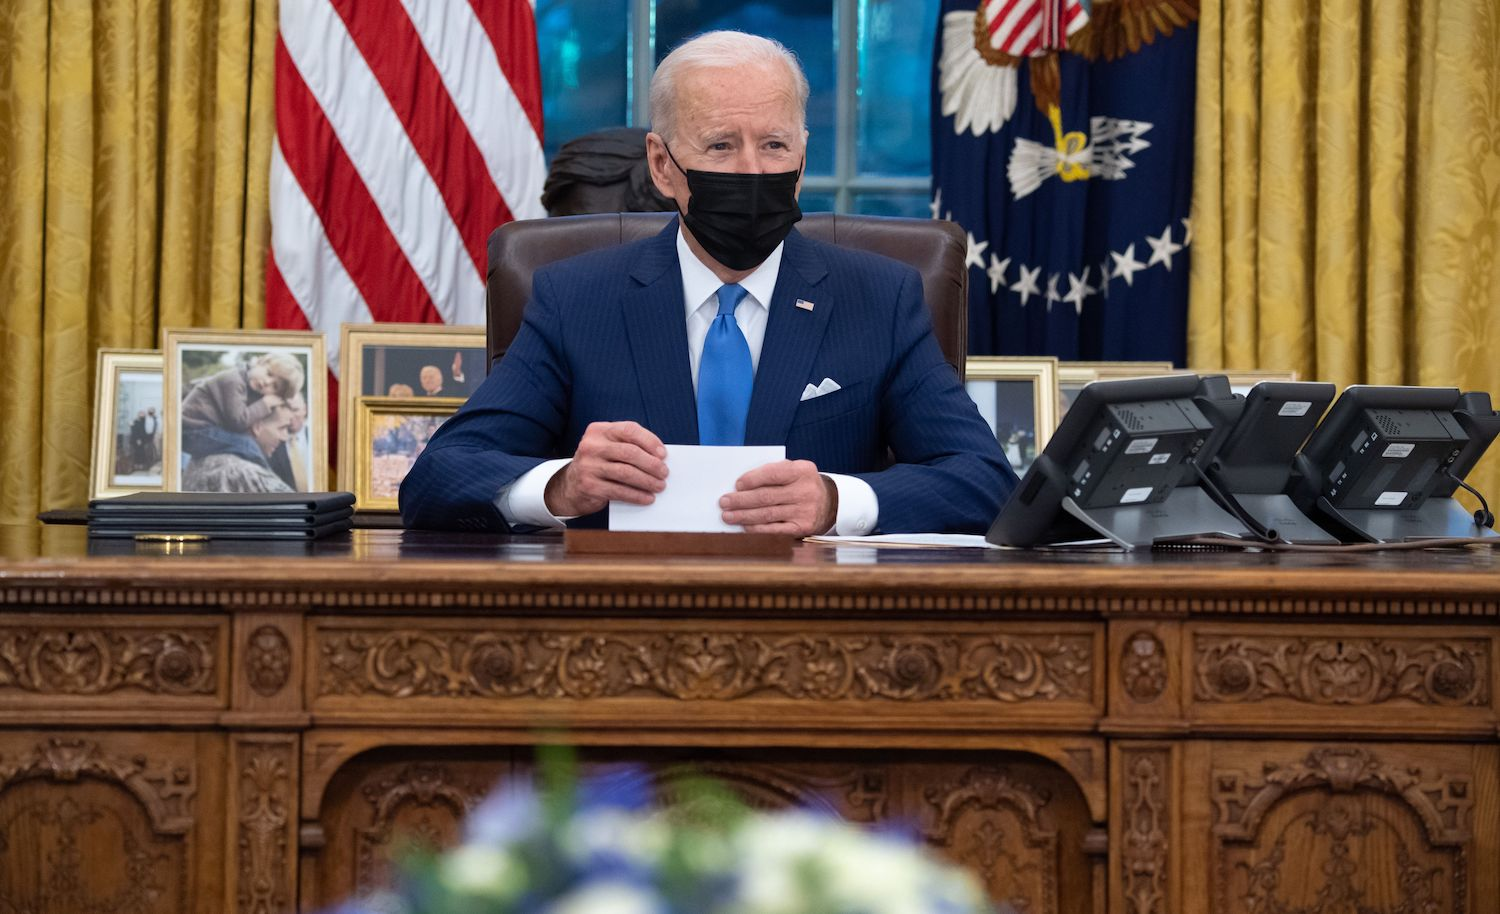 US President Joe Biden speaks before signing executive orders related to immigration in the Oval Office of the White House in Washington, DC, February 2, 2021. (Photo by SAUL LOEB / AFP) (Photo by SAUL LOEB/AFP via Getty Images)